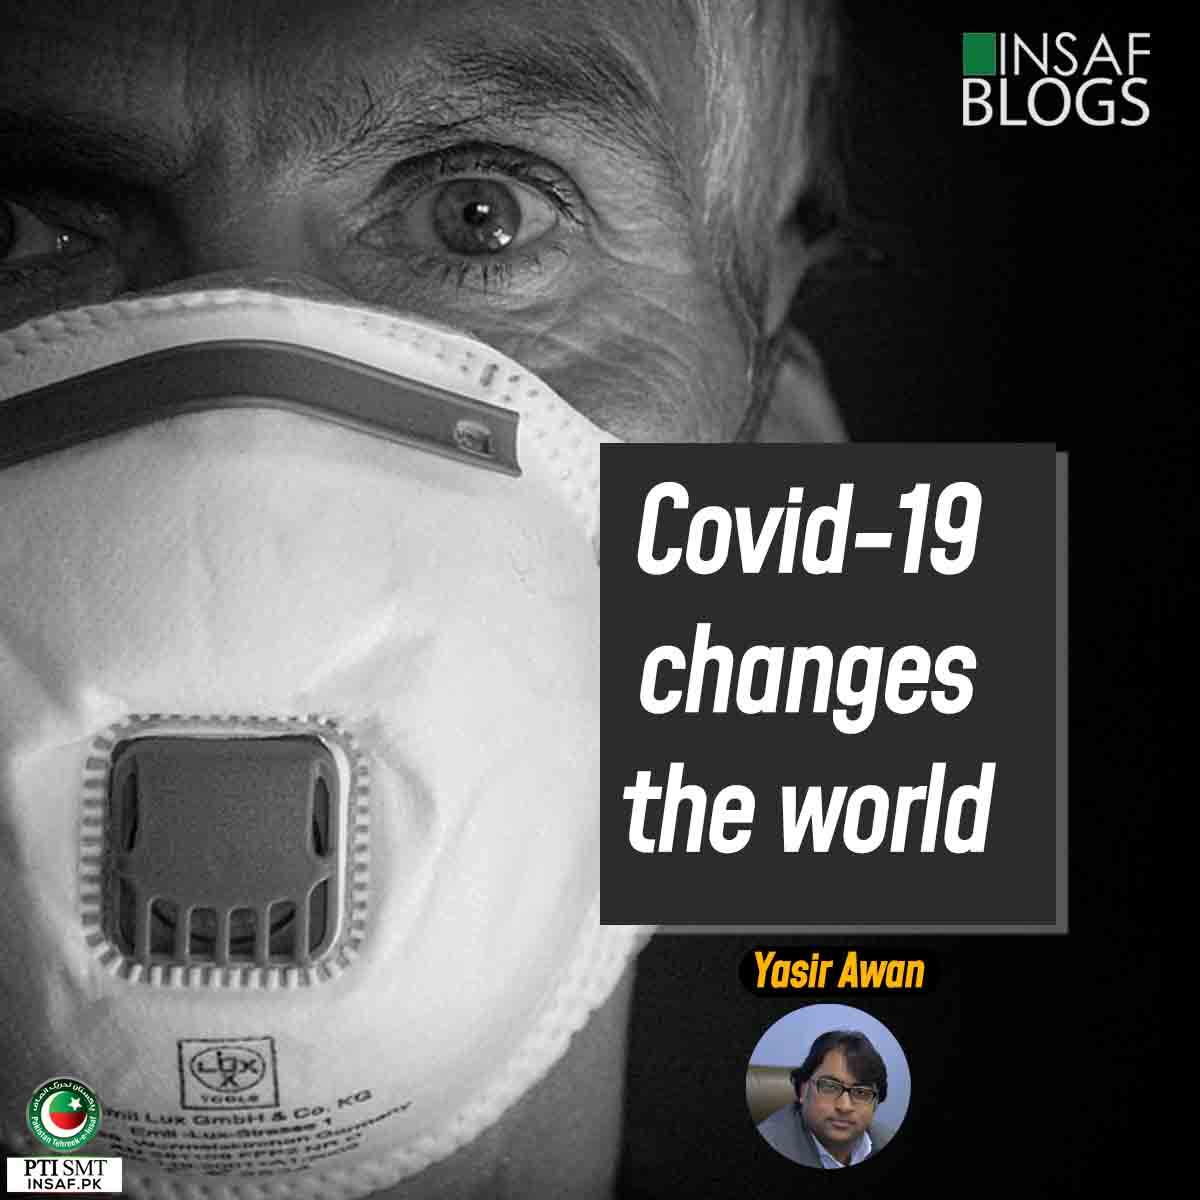 Covid-19 changes the world - Insaf Blog